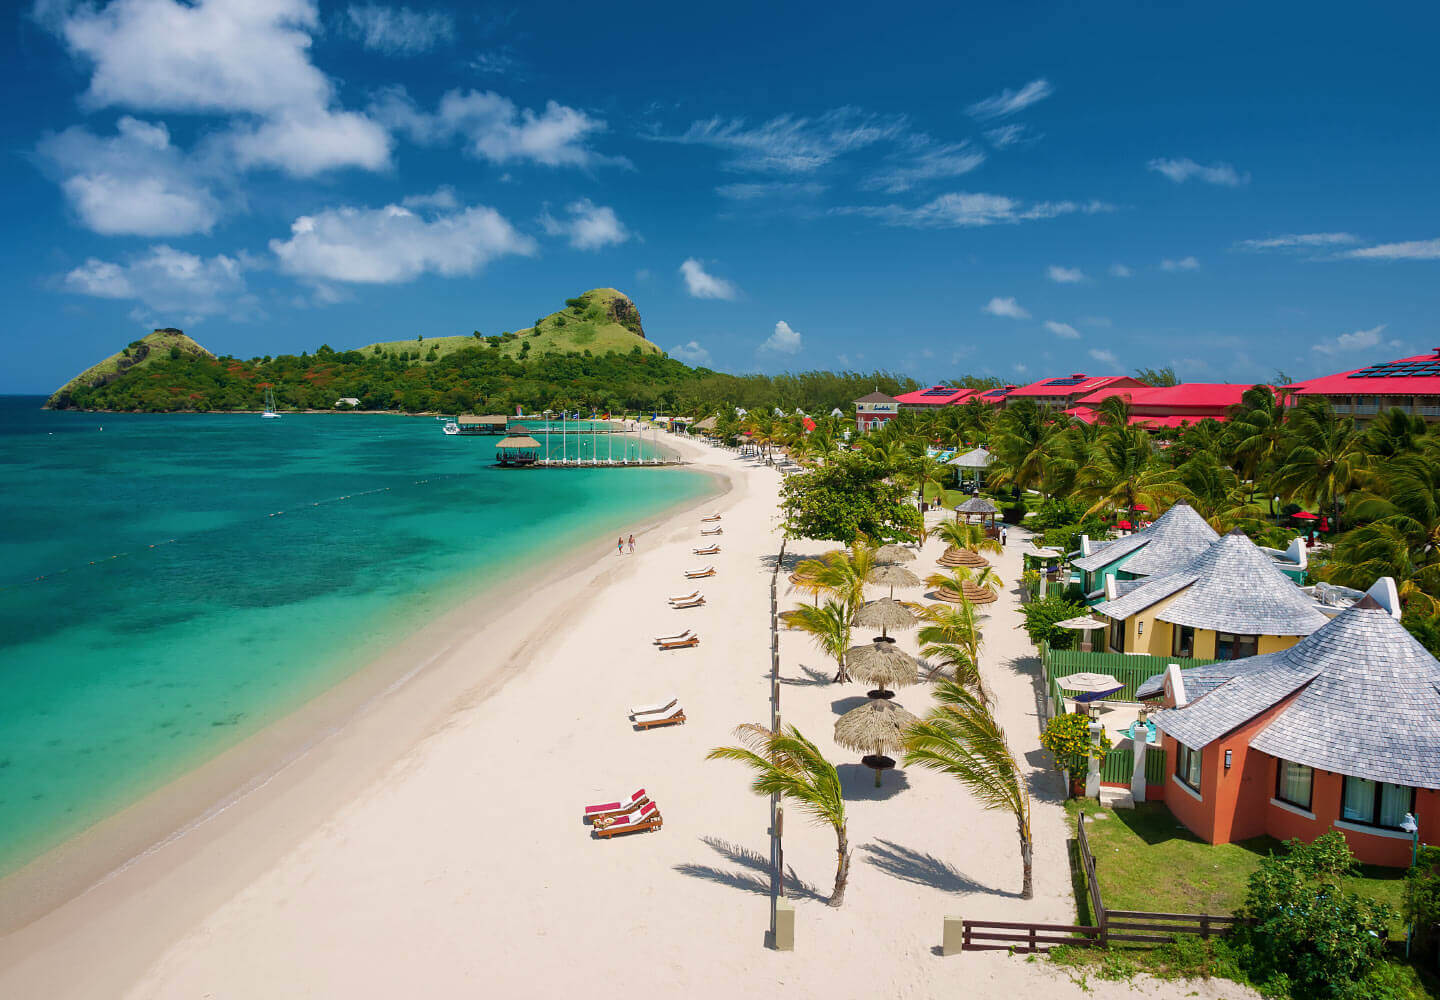 Sandals Grande St. Lucian - All Inclusive Vacations